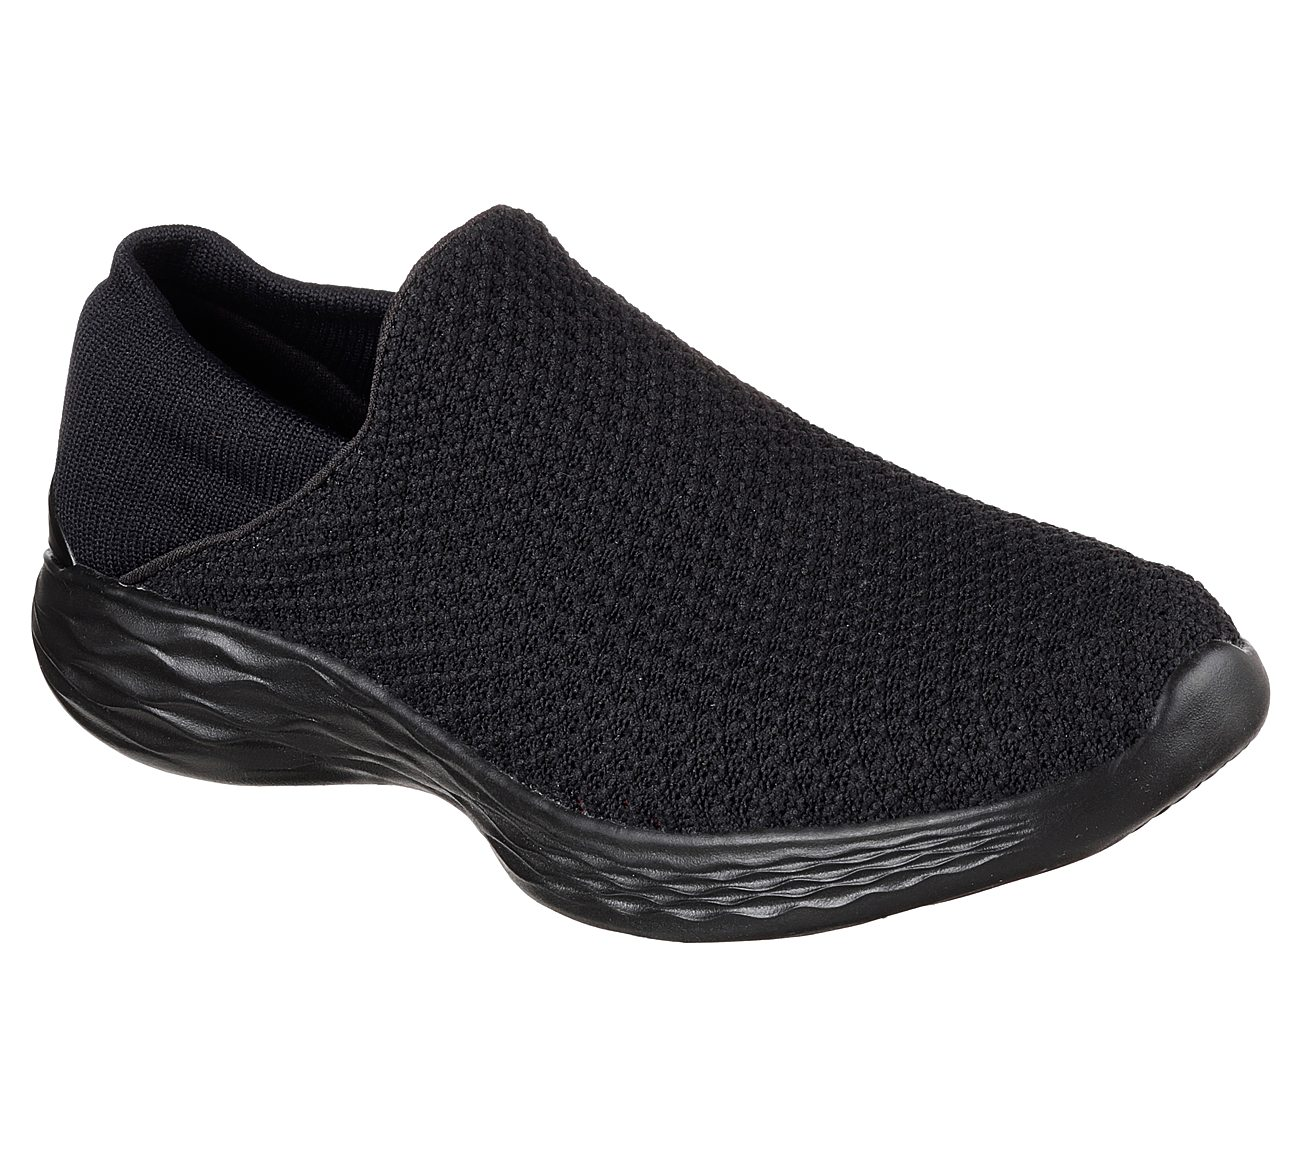 sketchers shoes you CJUFWTH